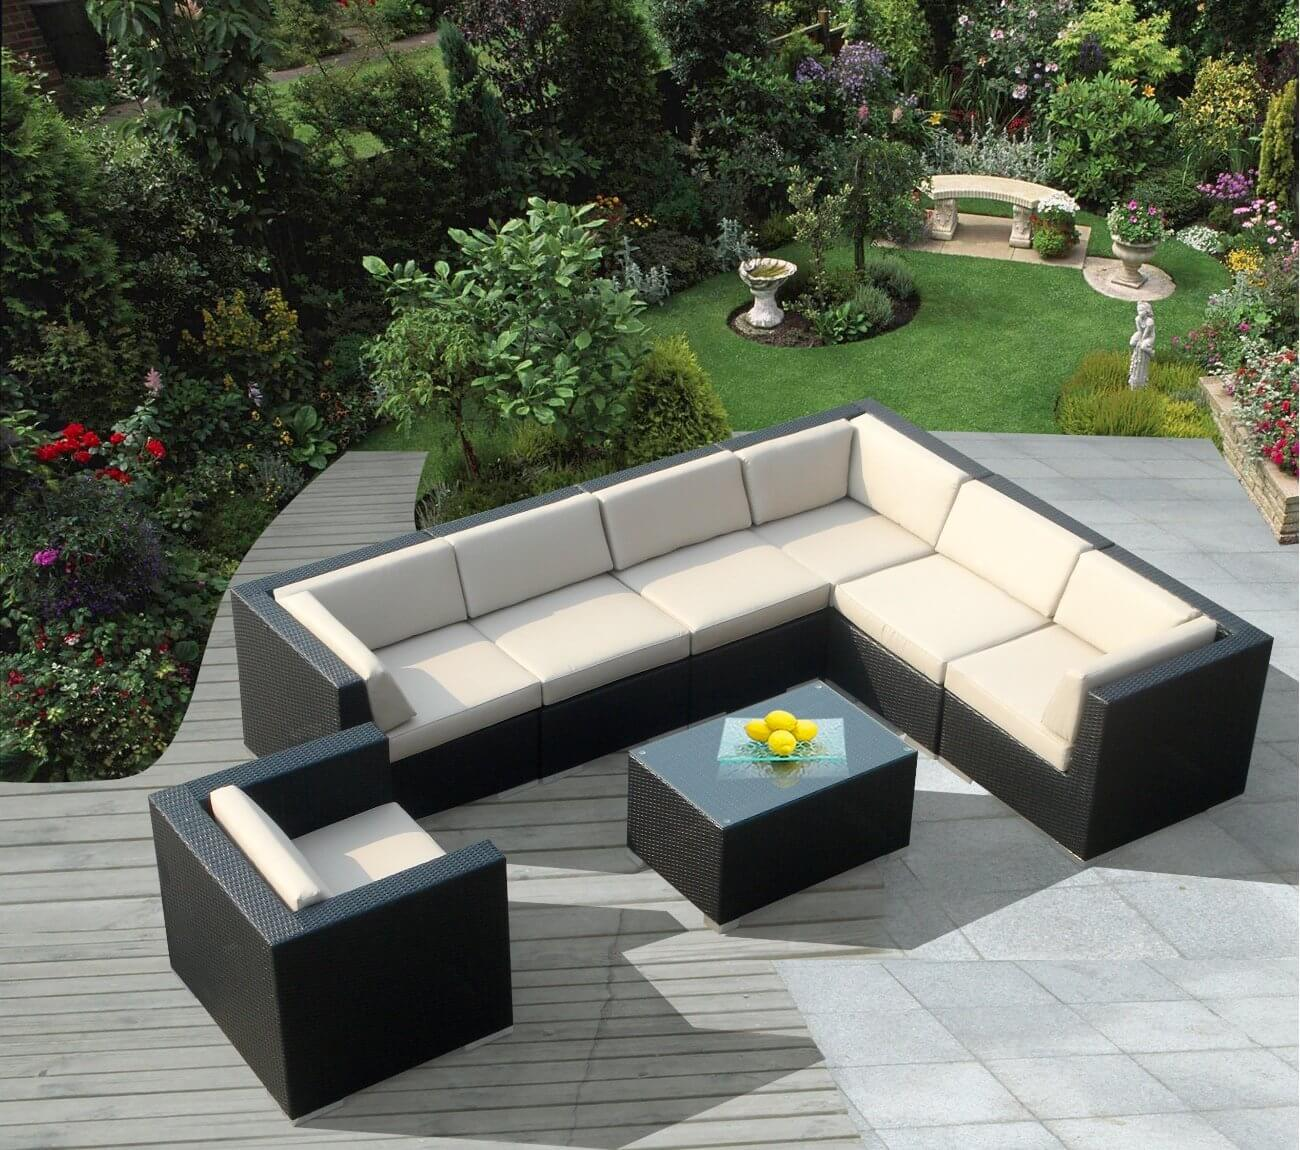 Lengthy L Shaped Wicker Patio Sectional In Black And Eggshell Tones  Features Matching Armchair Plus .